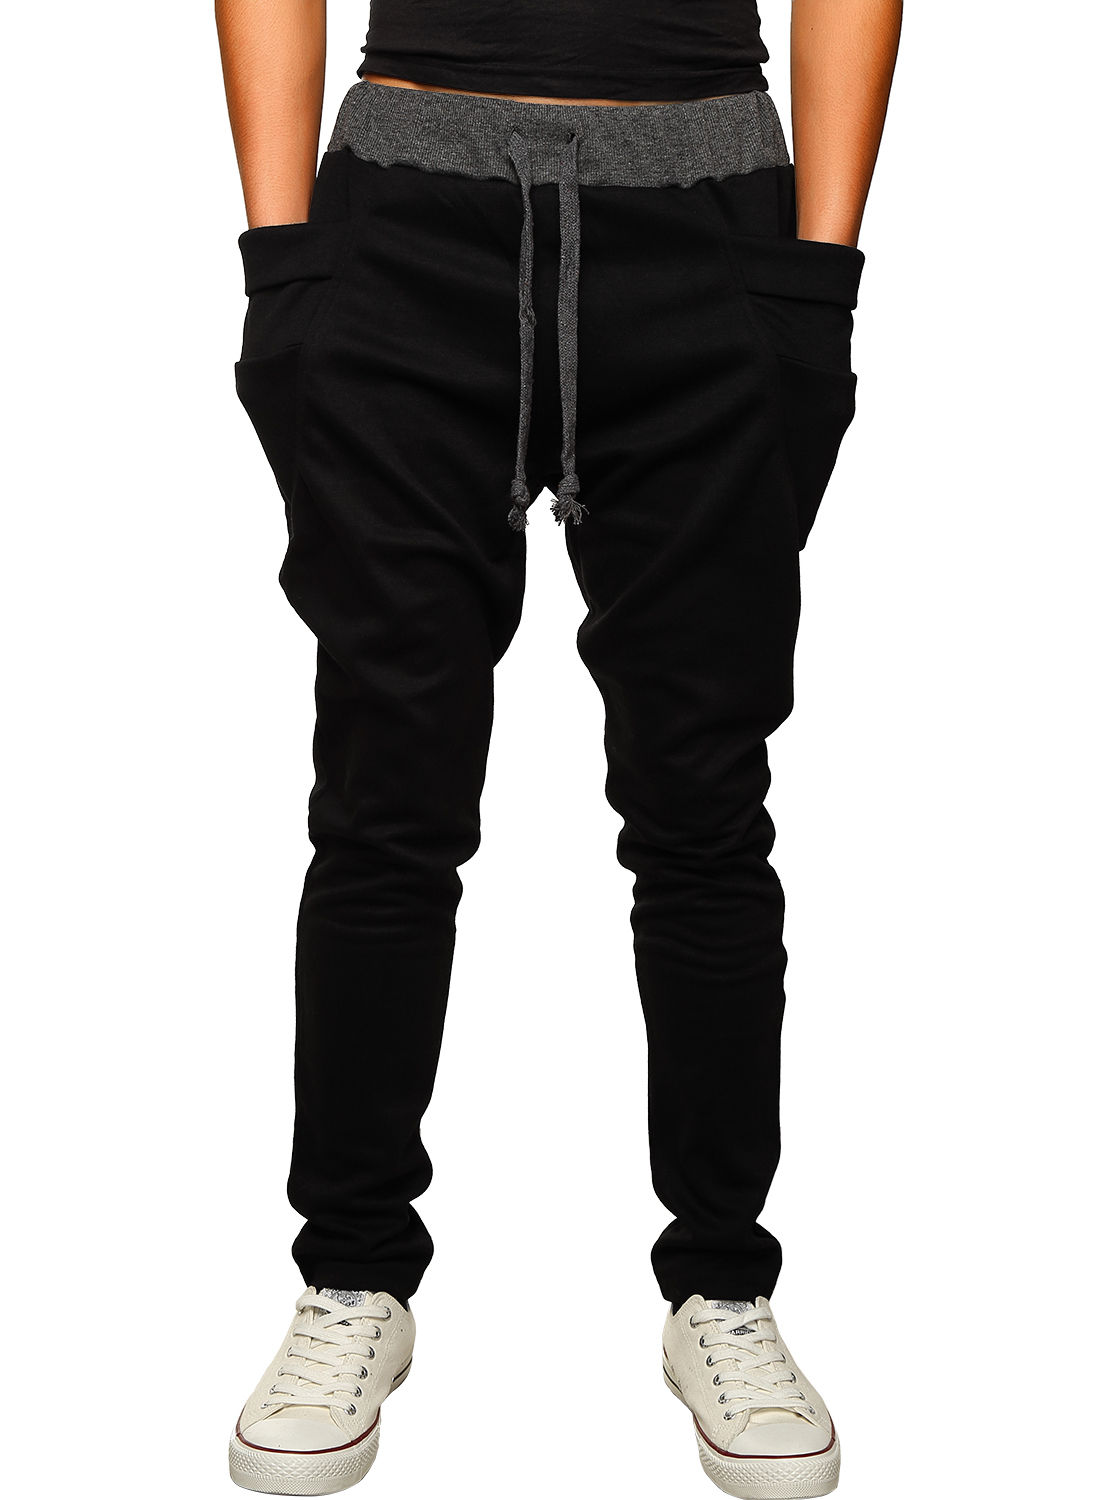 Buy the latest jogger pants for men cheap shop fashion style with free shipping, and check out our daily updated new arrival jogger pants for men at ggso.ga